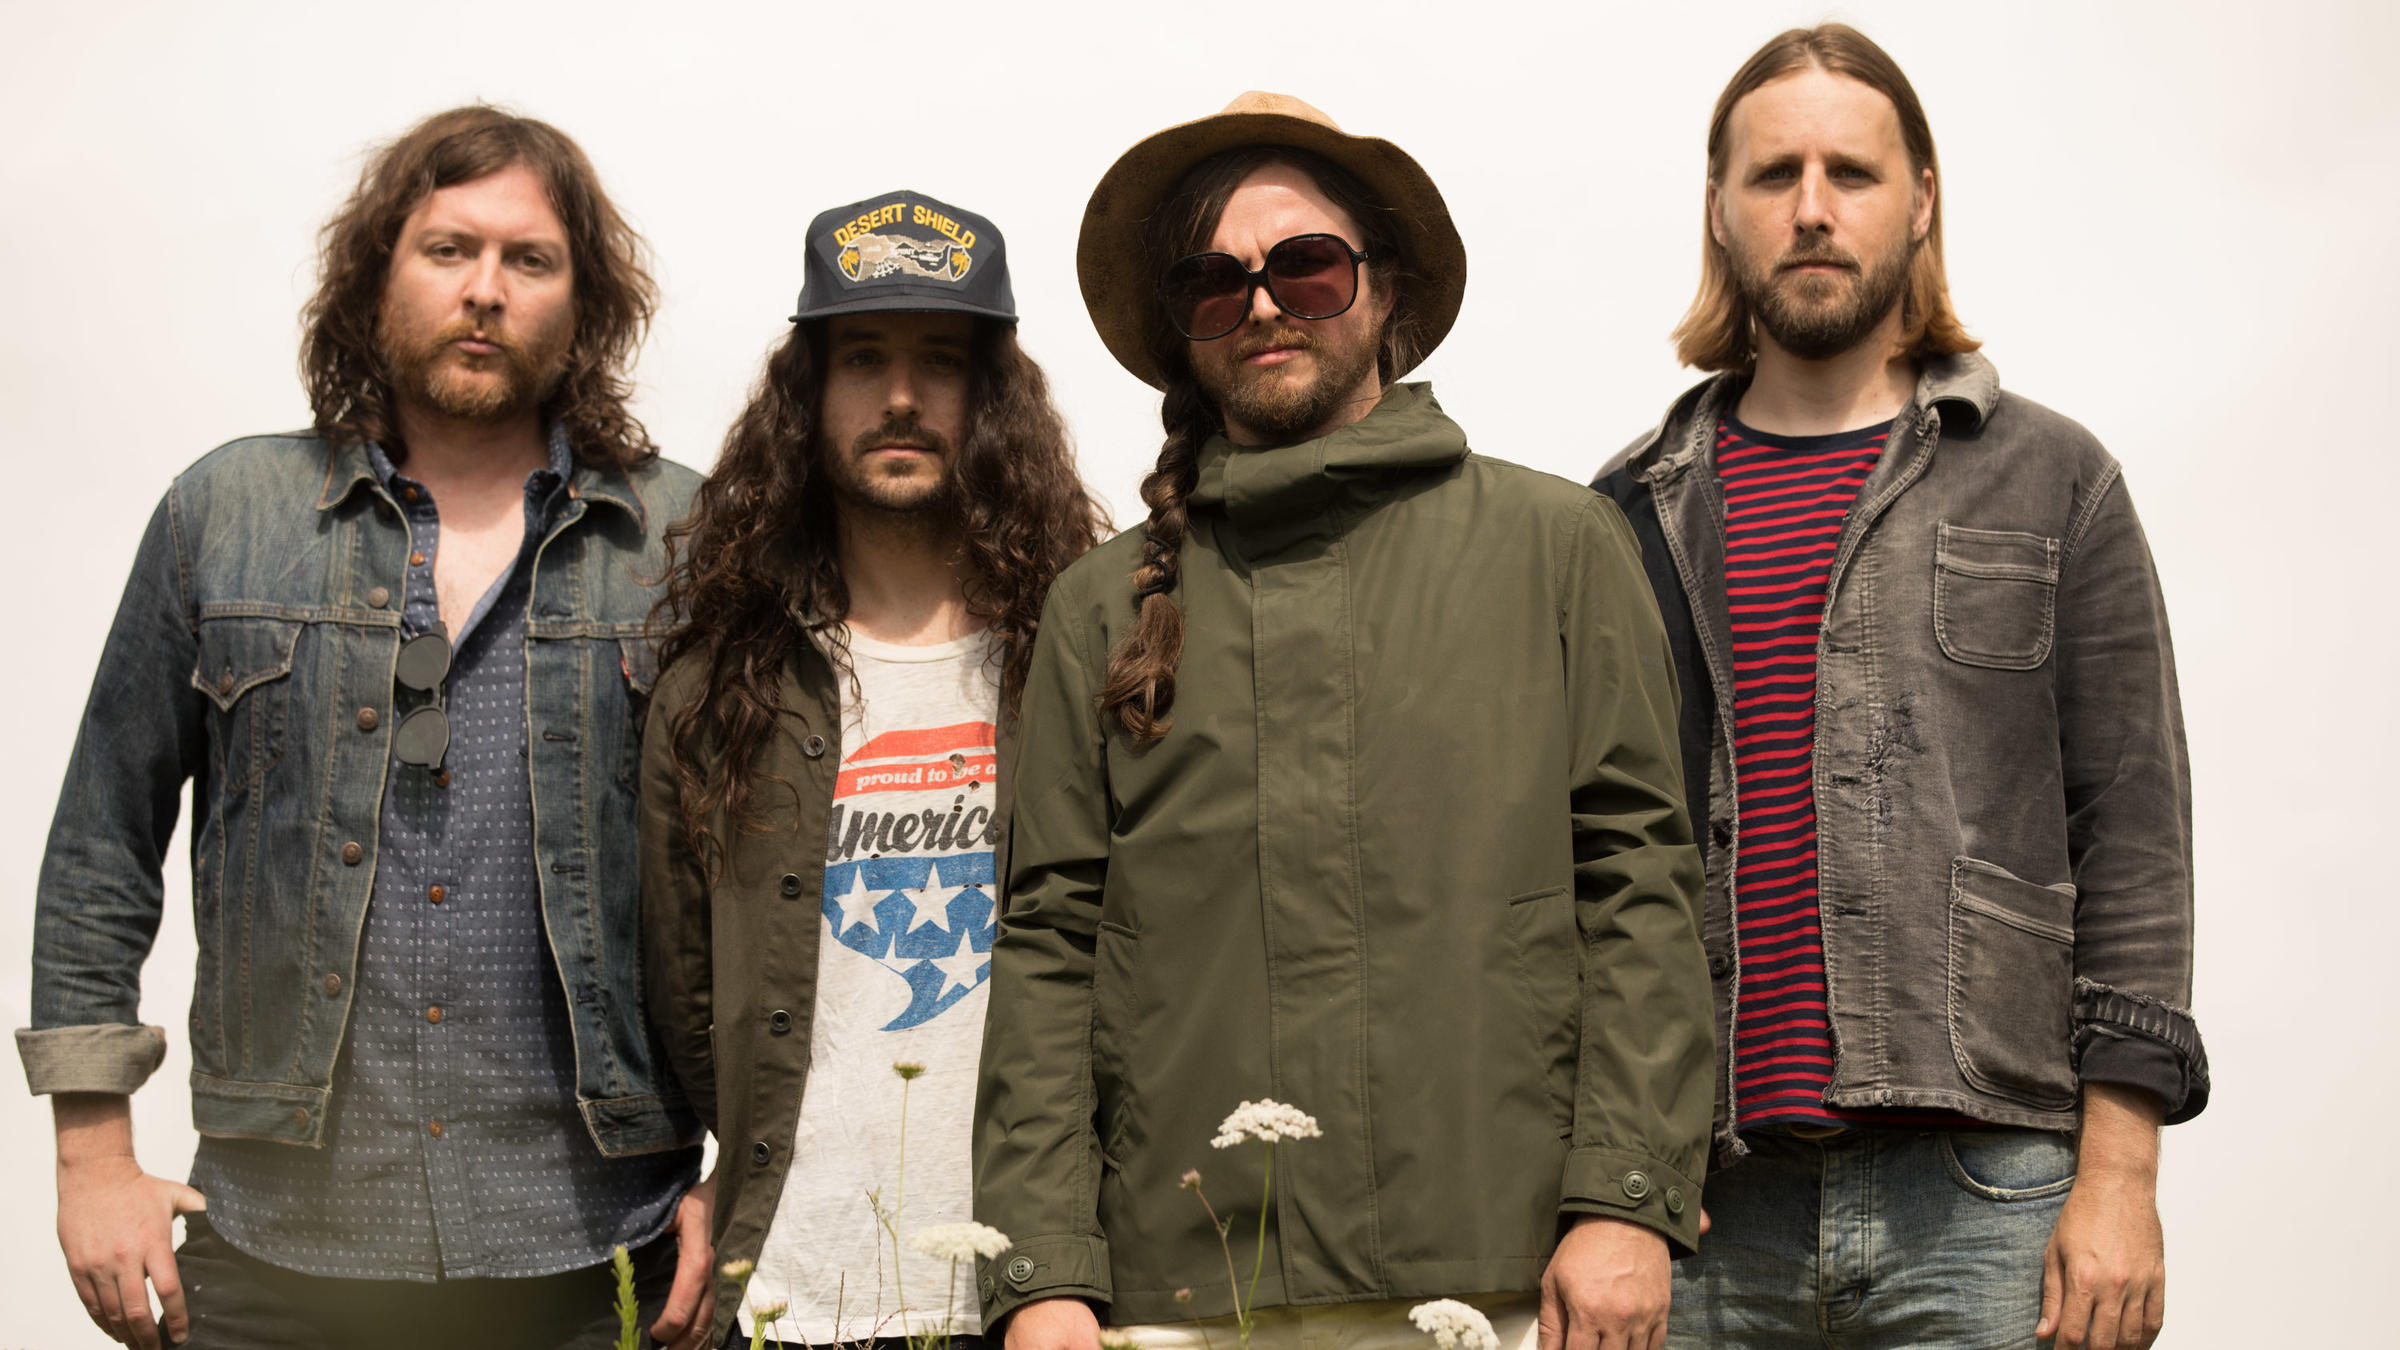 J roddy walston the business on world cafe west virginia public j roddy walston the business gumiabroncs Choice Image